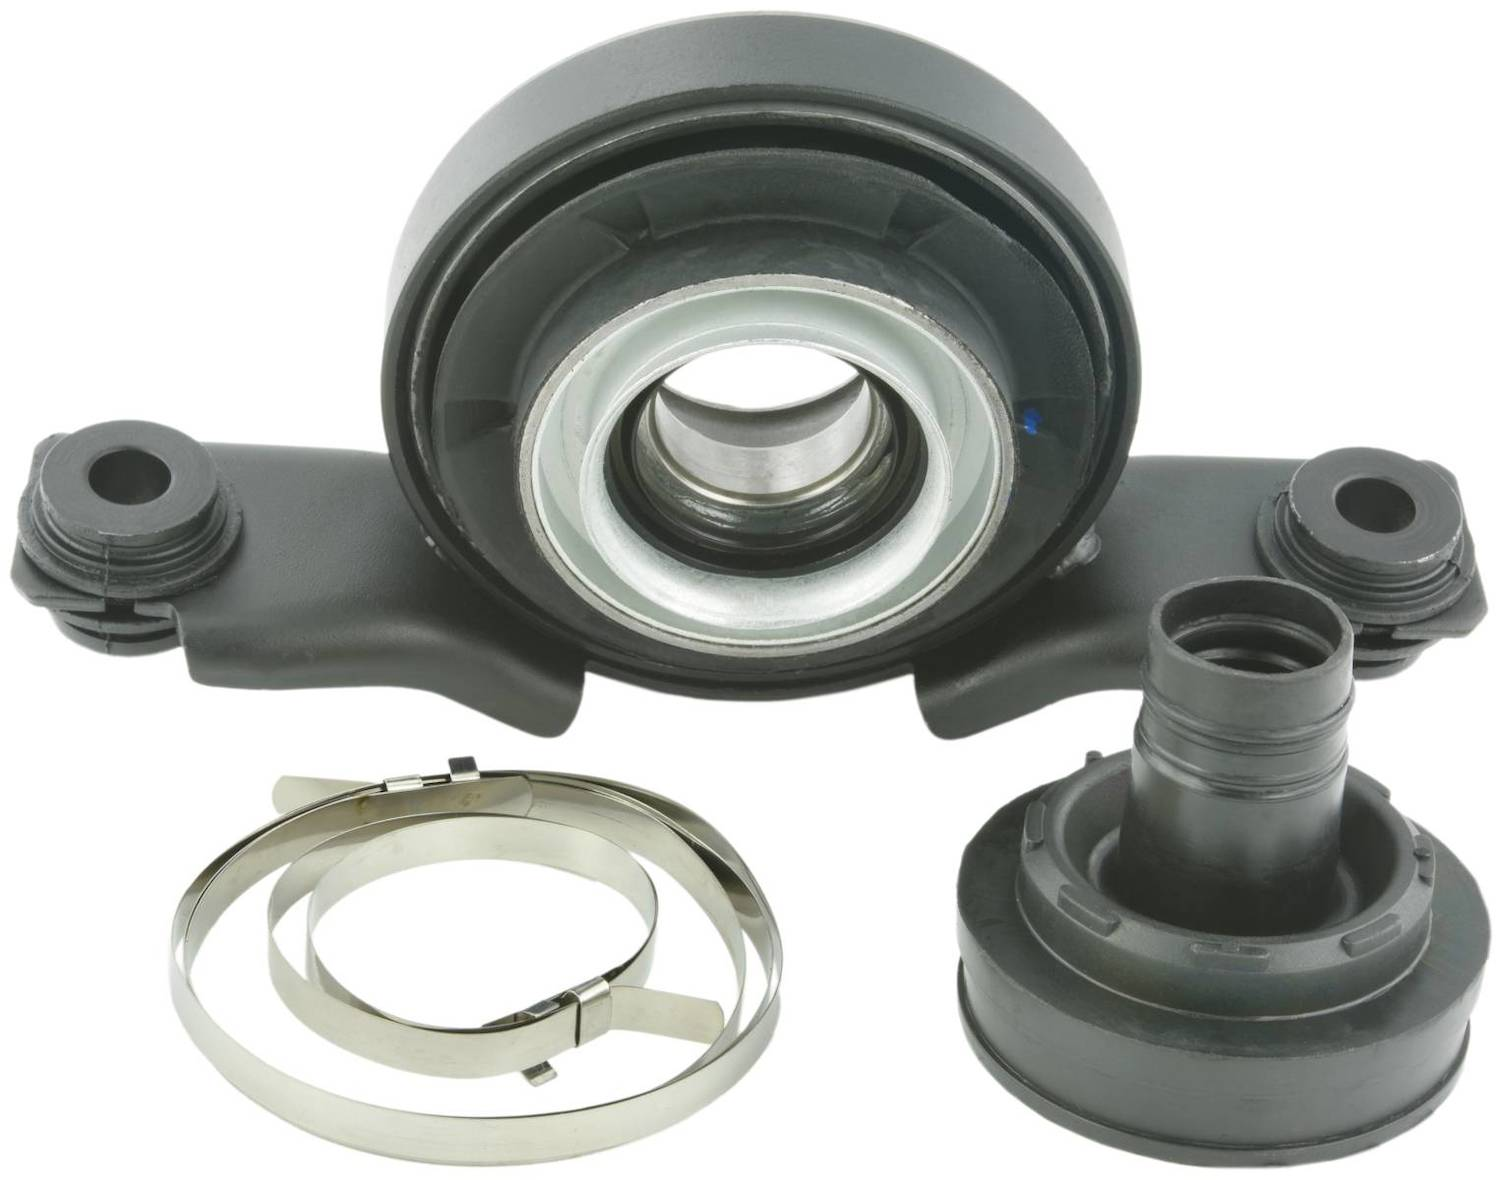 Center Bearing Support For Subaru Forester S12 2007 2012